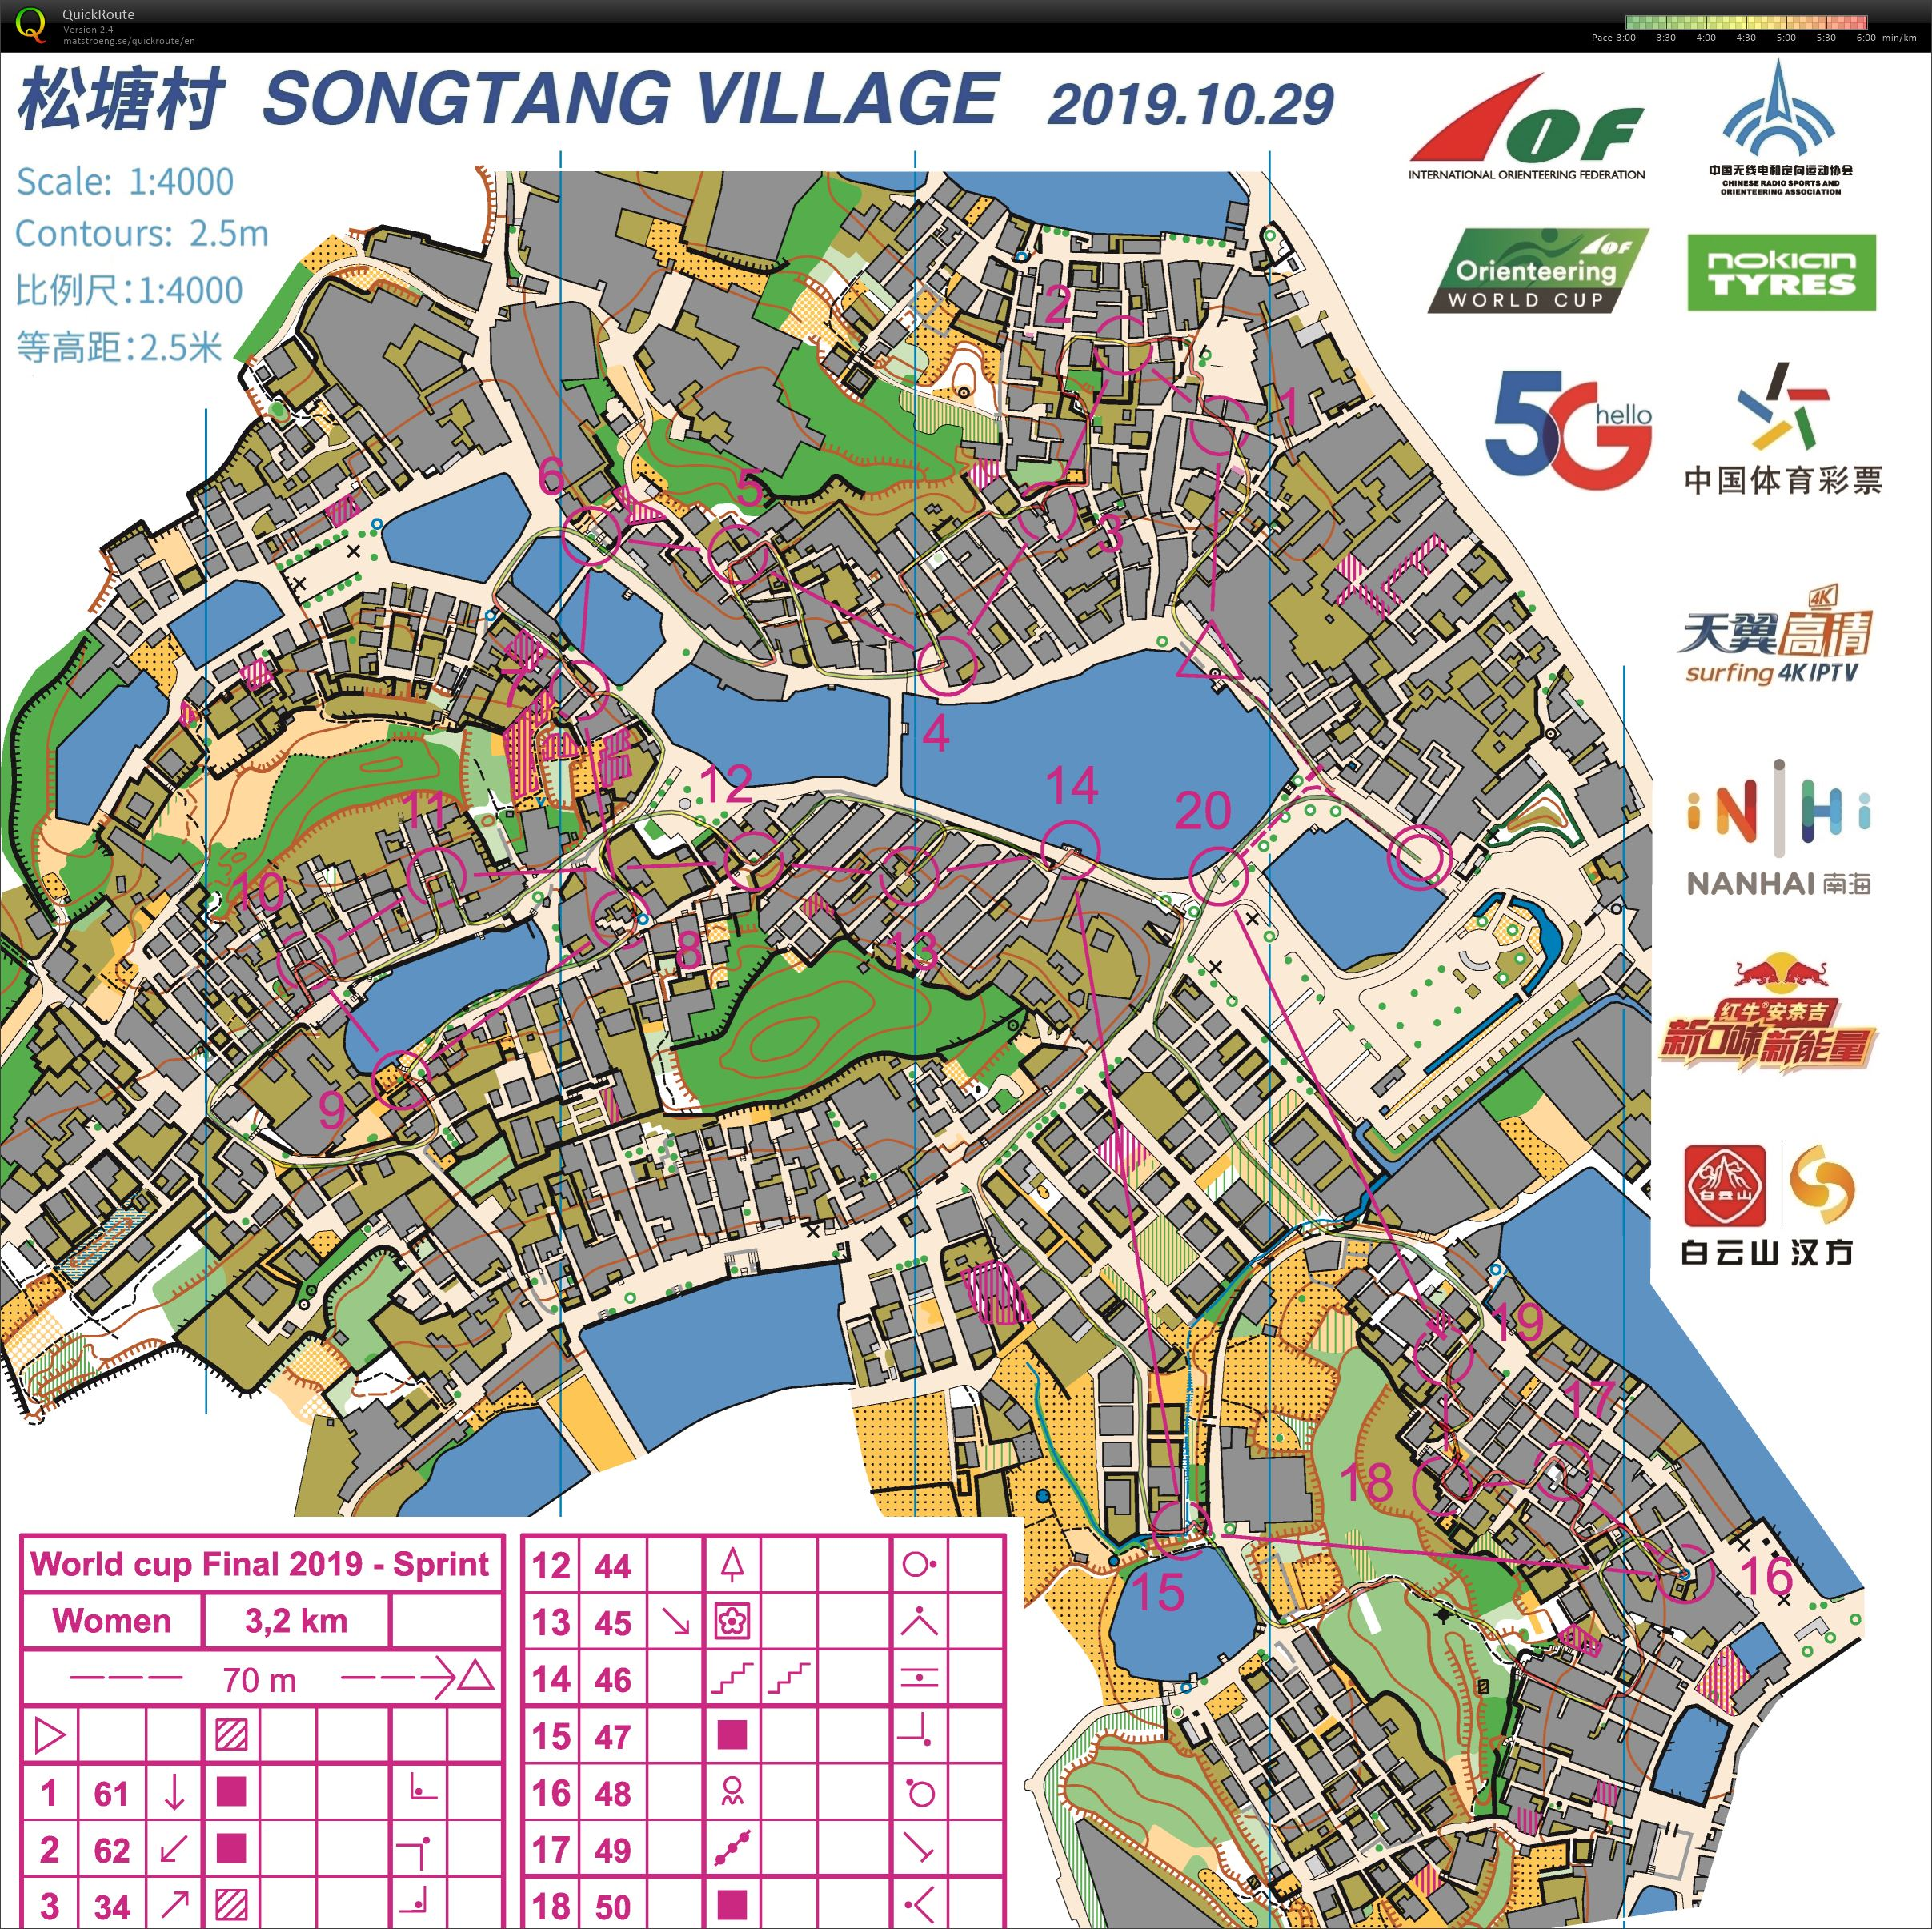 WCup China || Sprint (29/10/2019)